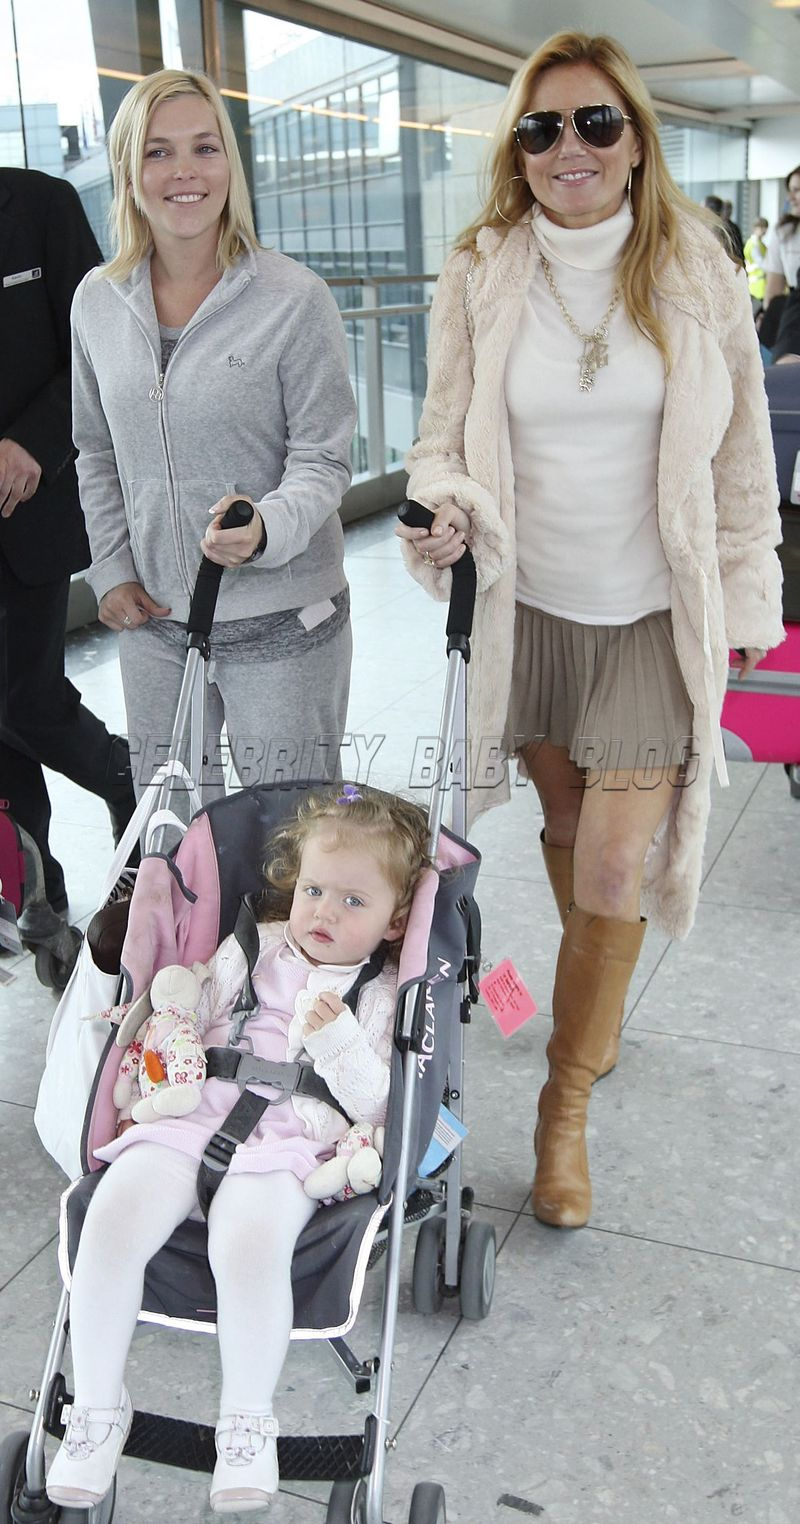 Geri And Bluebell Halliwell Arrive At Heathrow Moms